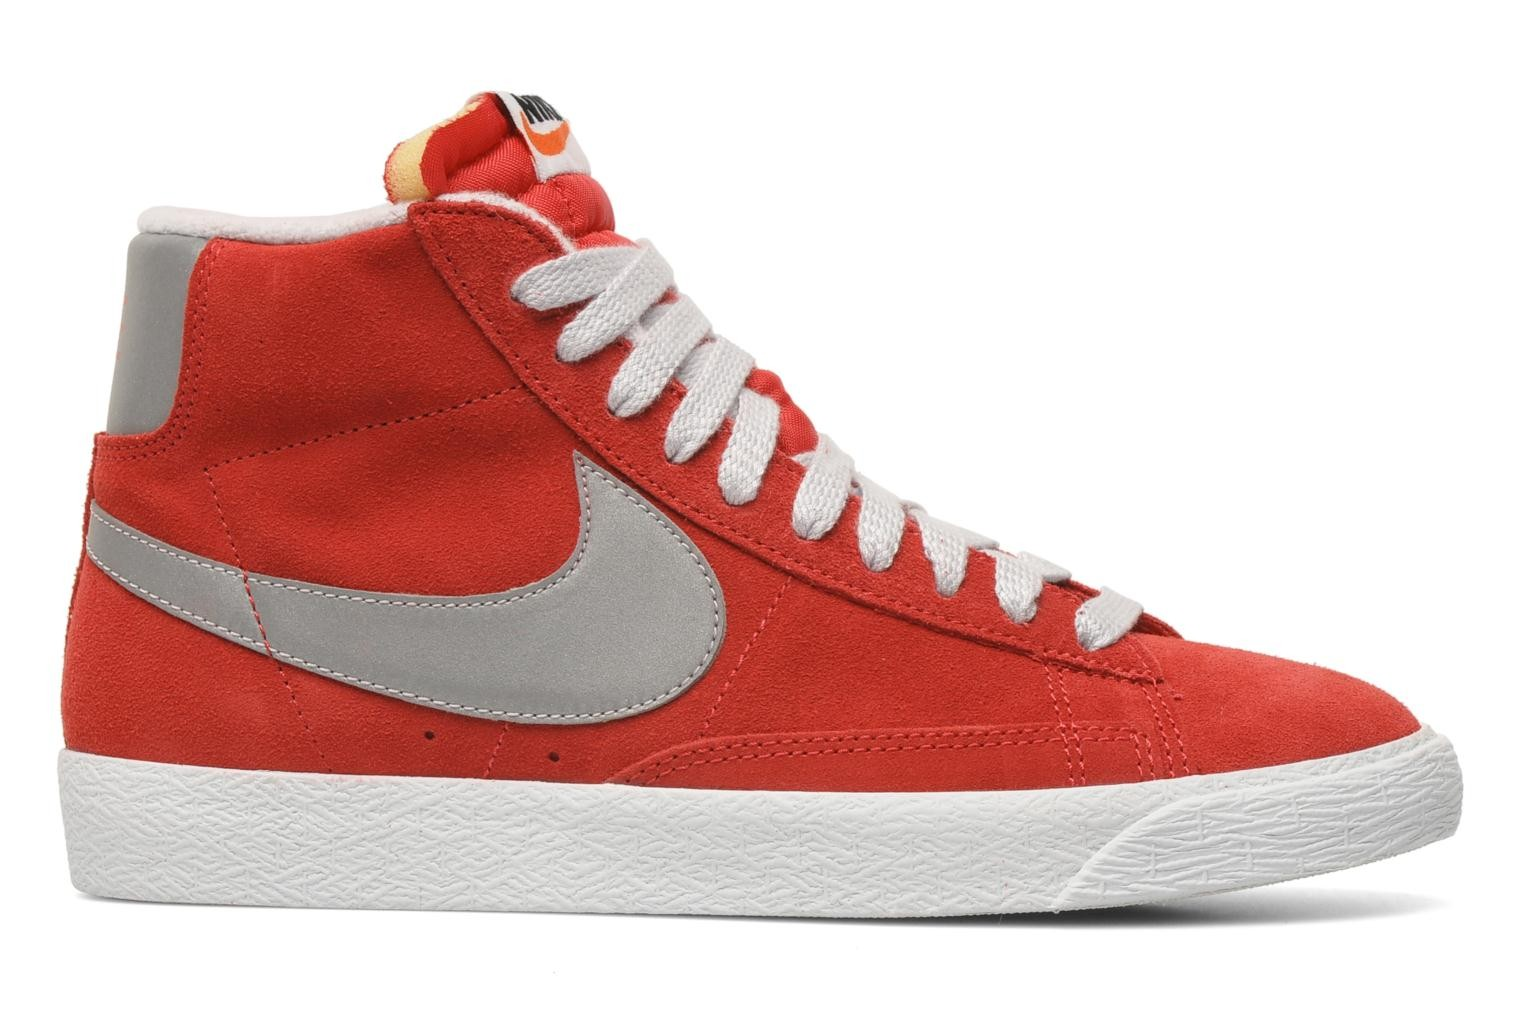 37f7e303 ... usa nike blazer mid prm vintage suede distinct red reflect silver pure  platinium mens shoe c5935